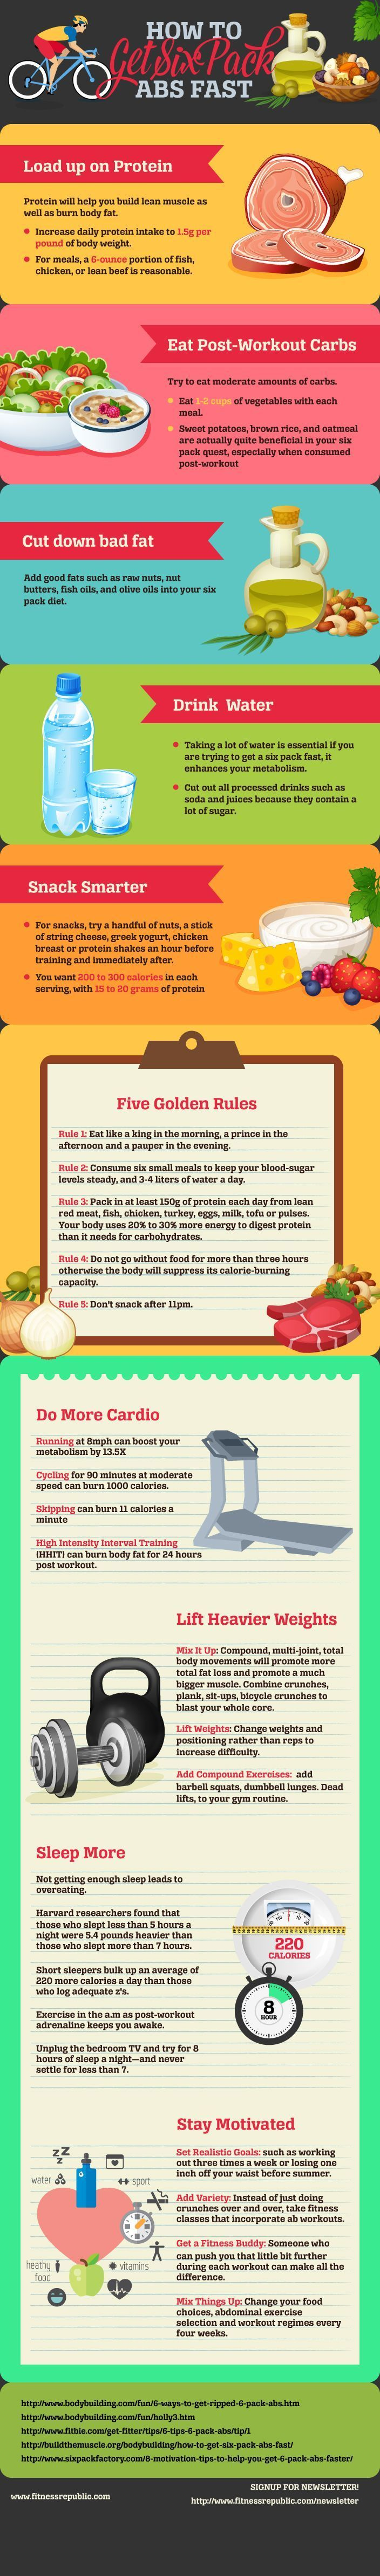 best diet images on pinterest healthy eating healthy meals and